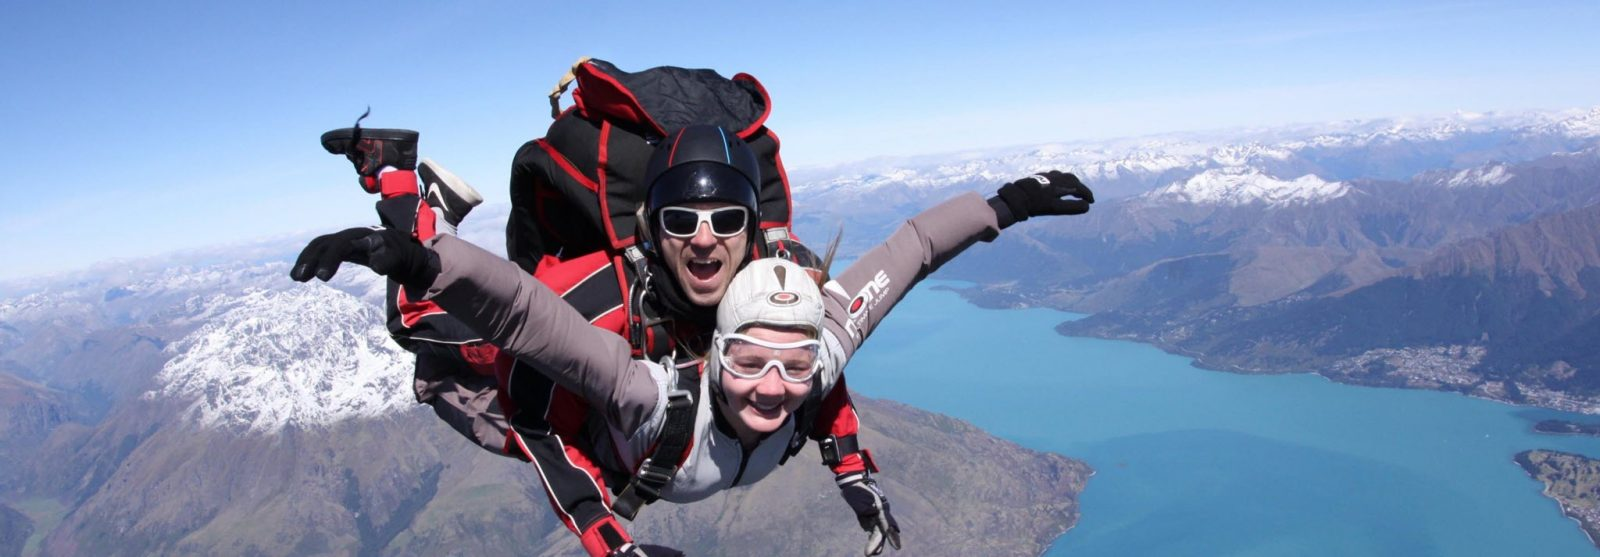 Queenstown NZONE The Ultimate Jump